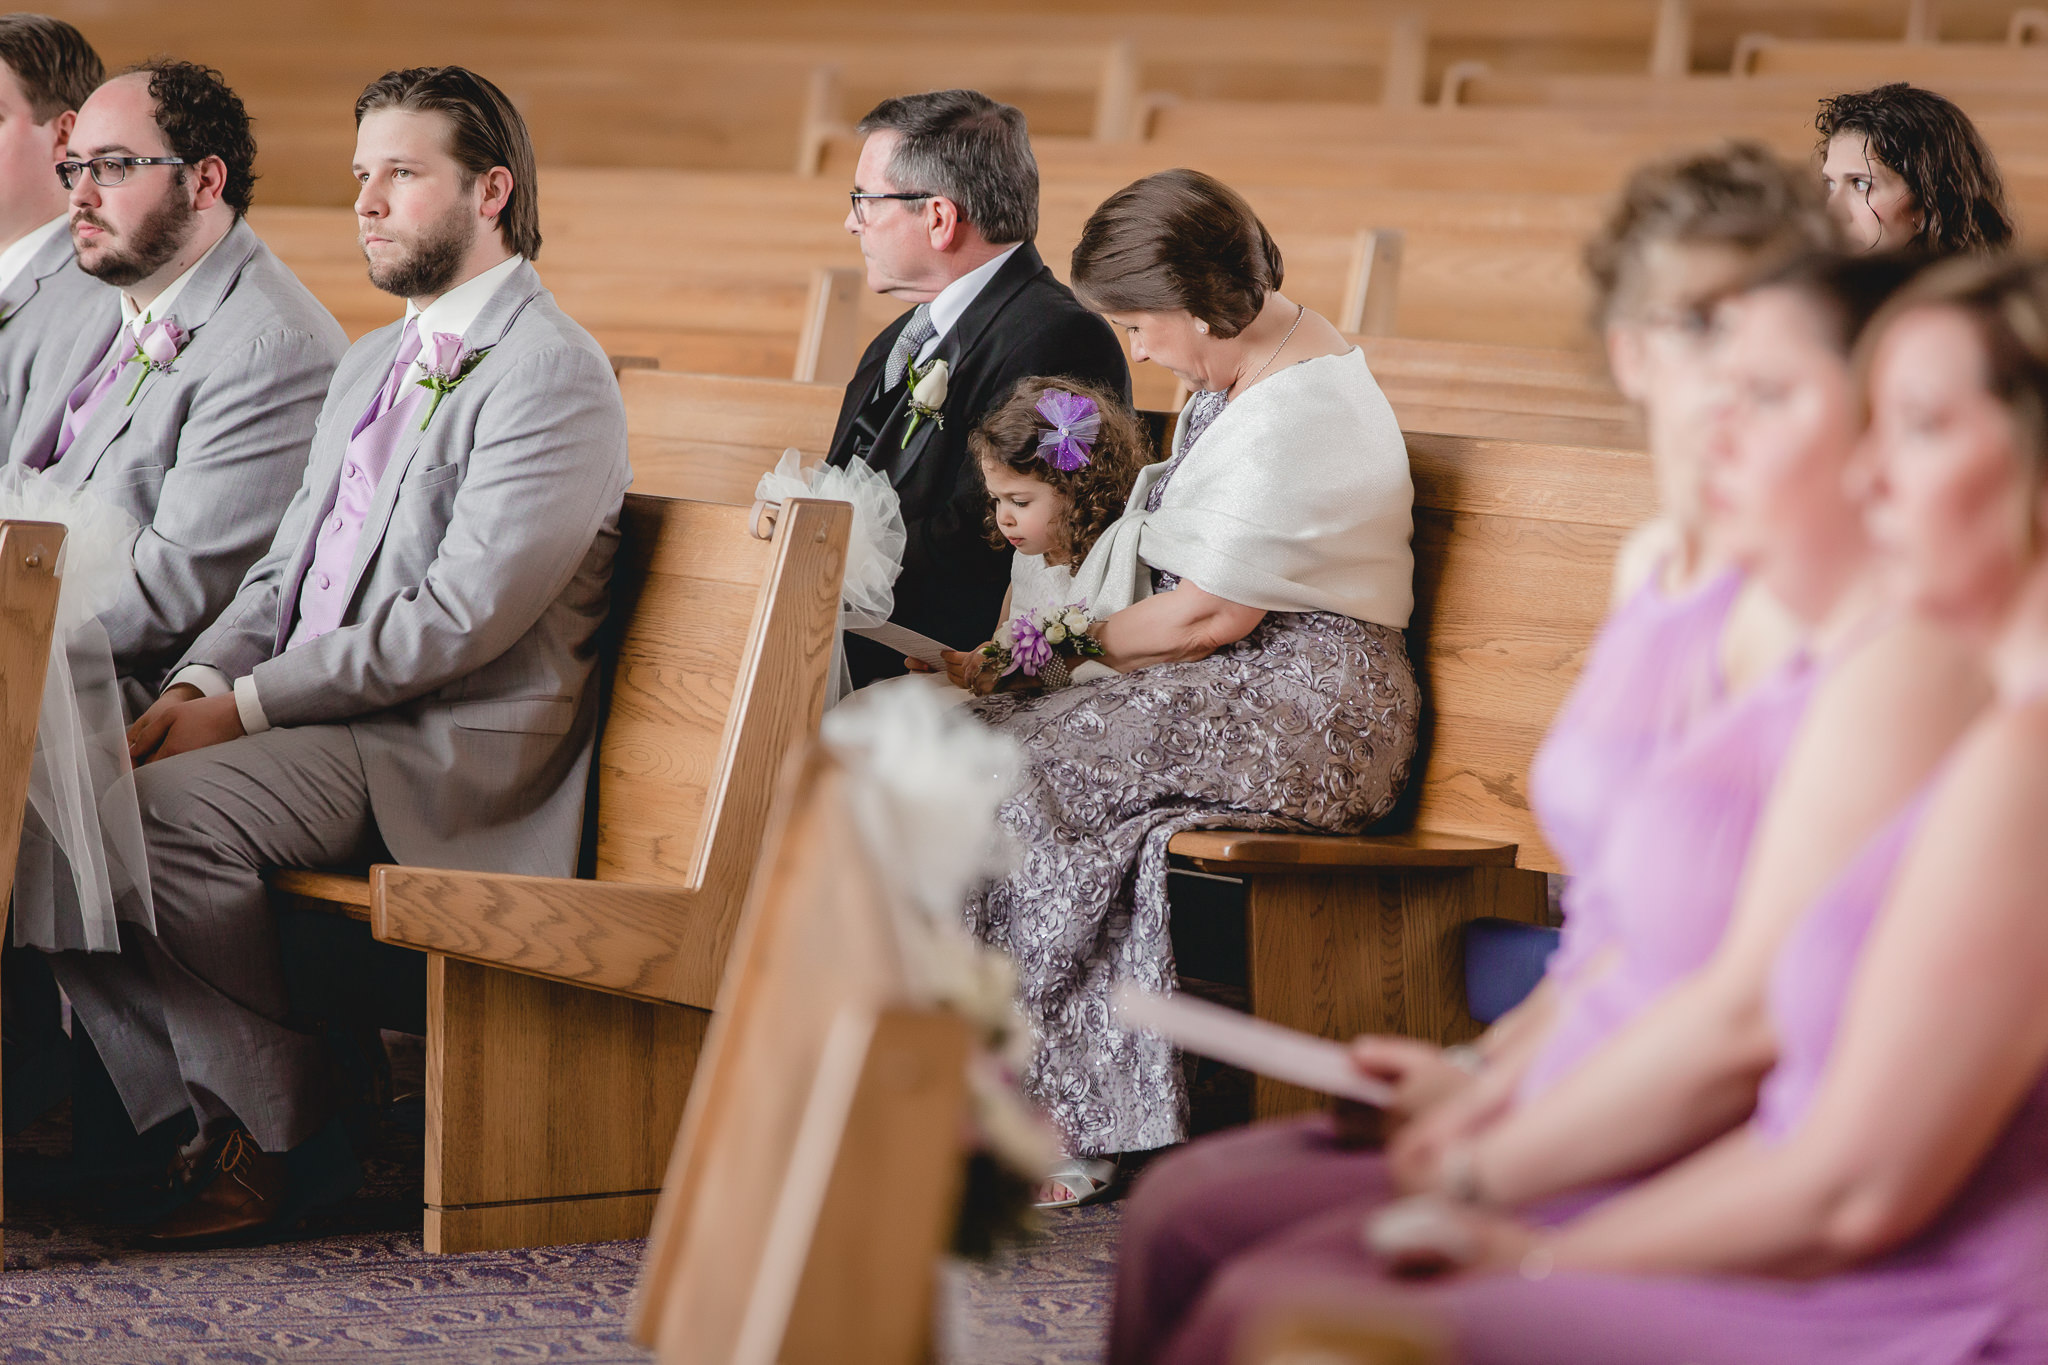 Parents of the groom with their granddaughter